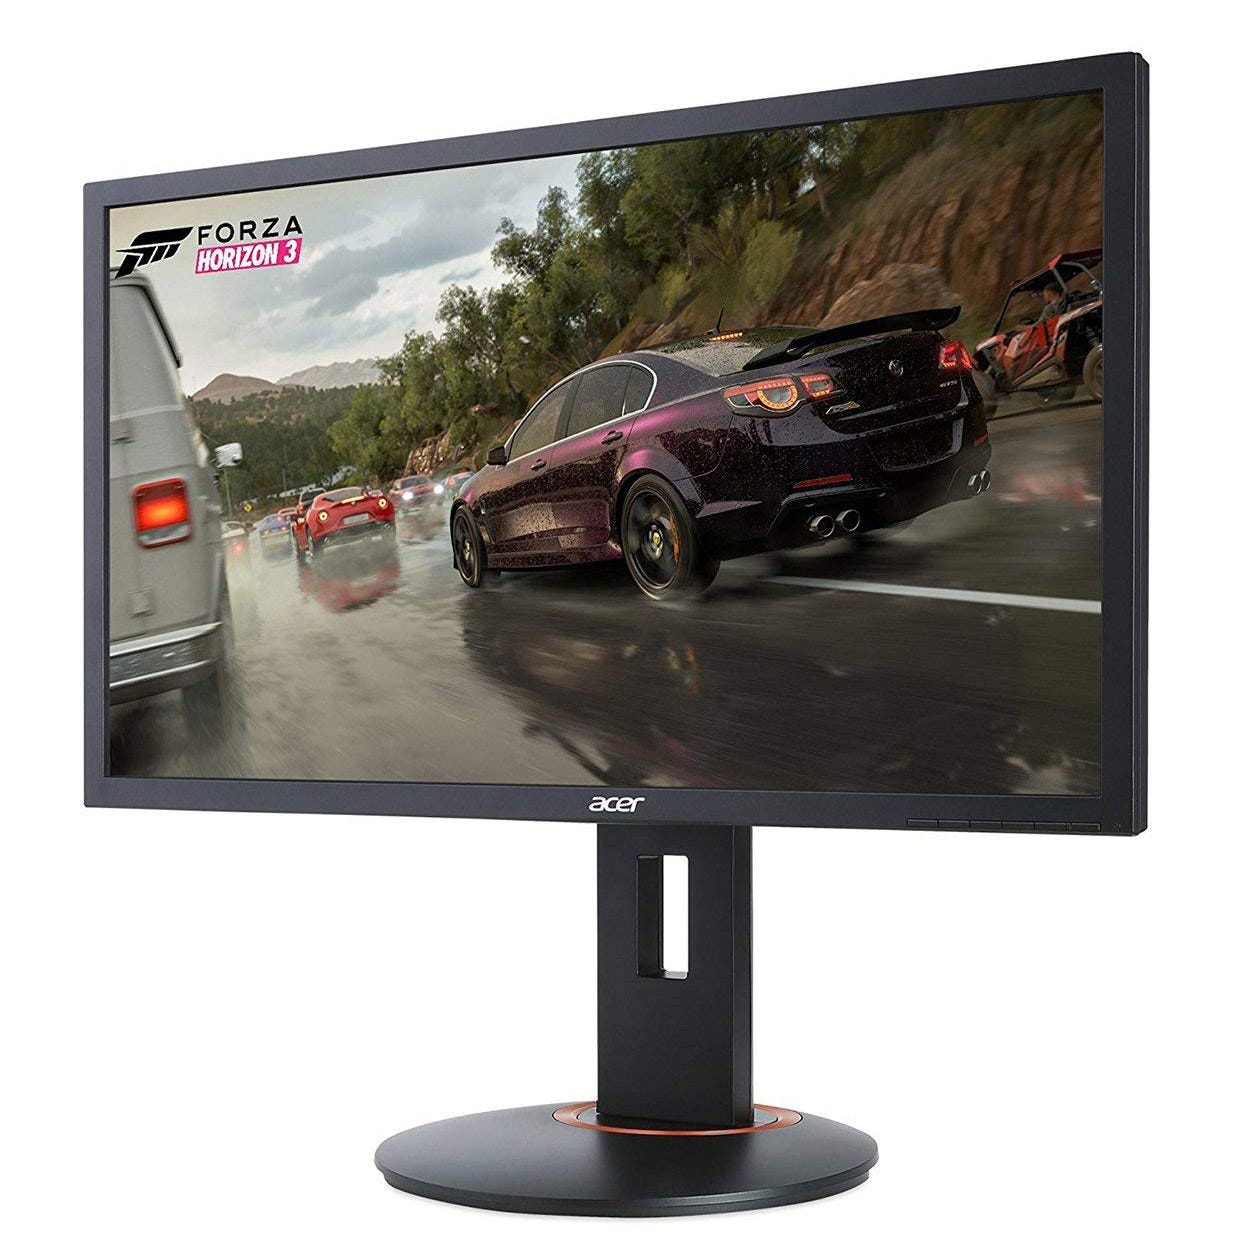 acer, acer monitor, gaming monitor, cheap monitor, 24 inch,